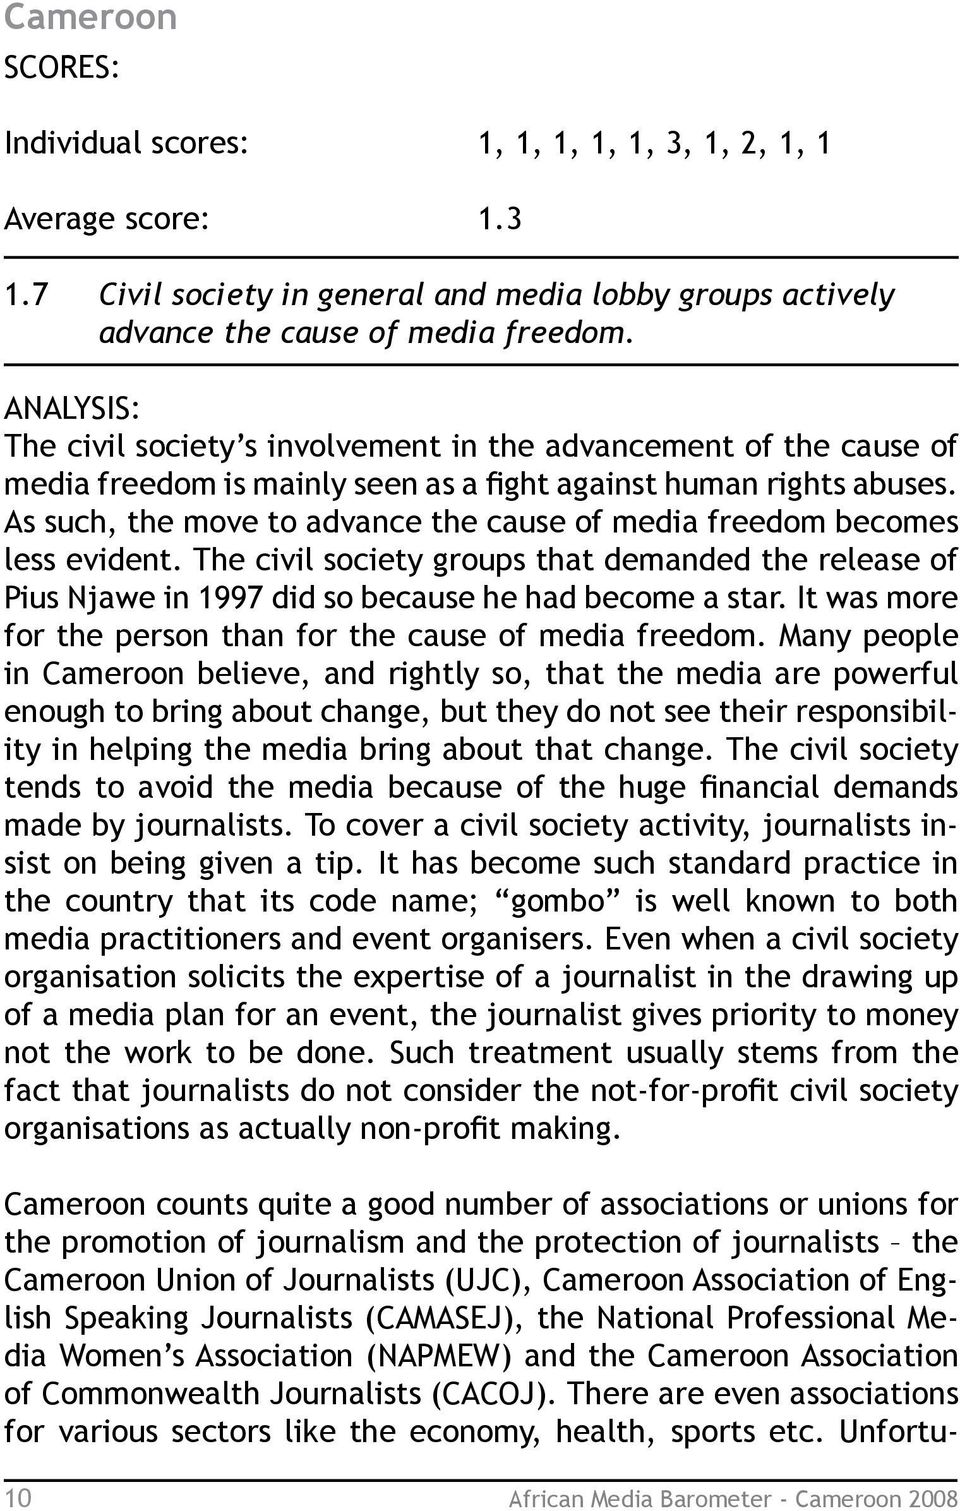 As such, the move to advance the cause of media freedom becomes less evident. The civil society groups that demanded the release of Pius Njawe in 1997 did so because he had become a star.